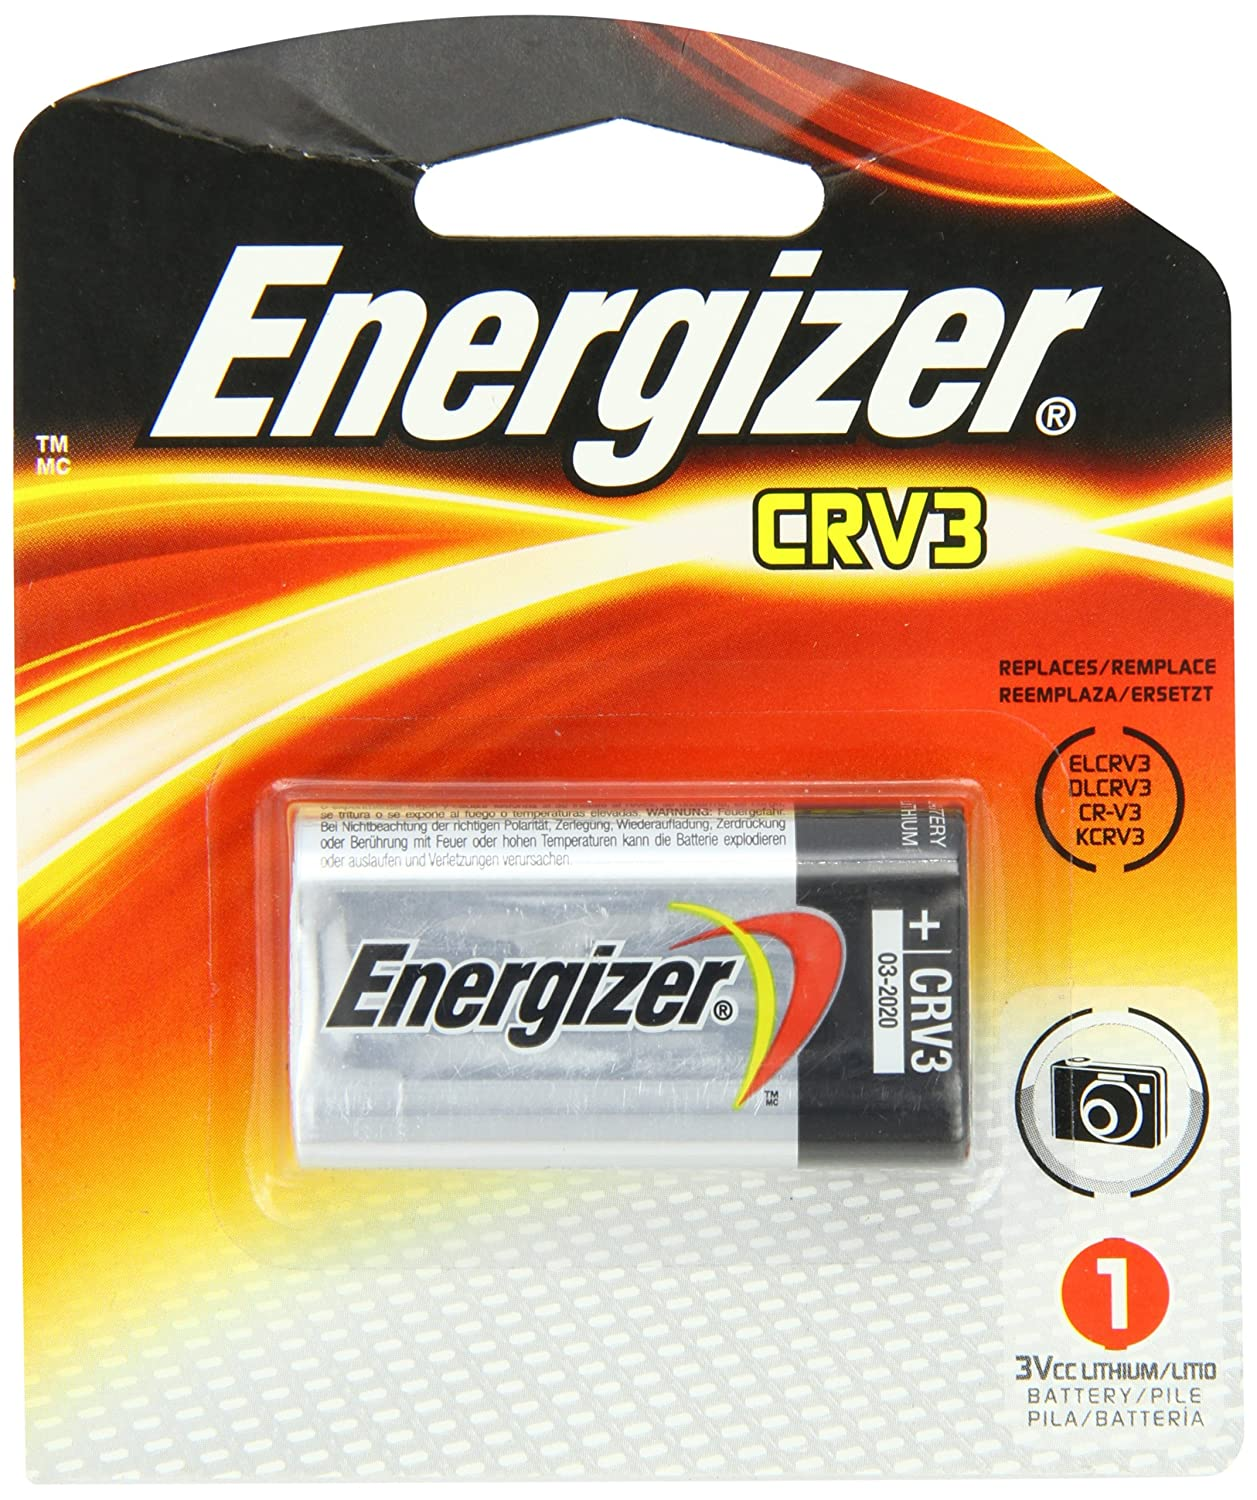 Energizer ELCRV3 Photo Lithium Battery Replacement